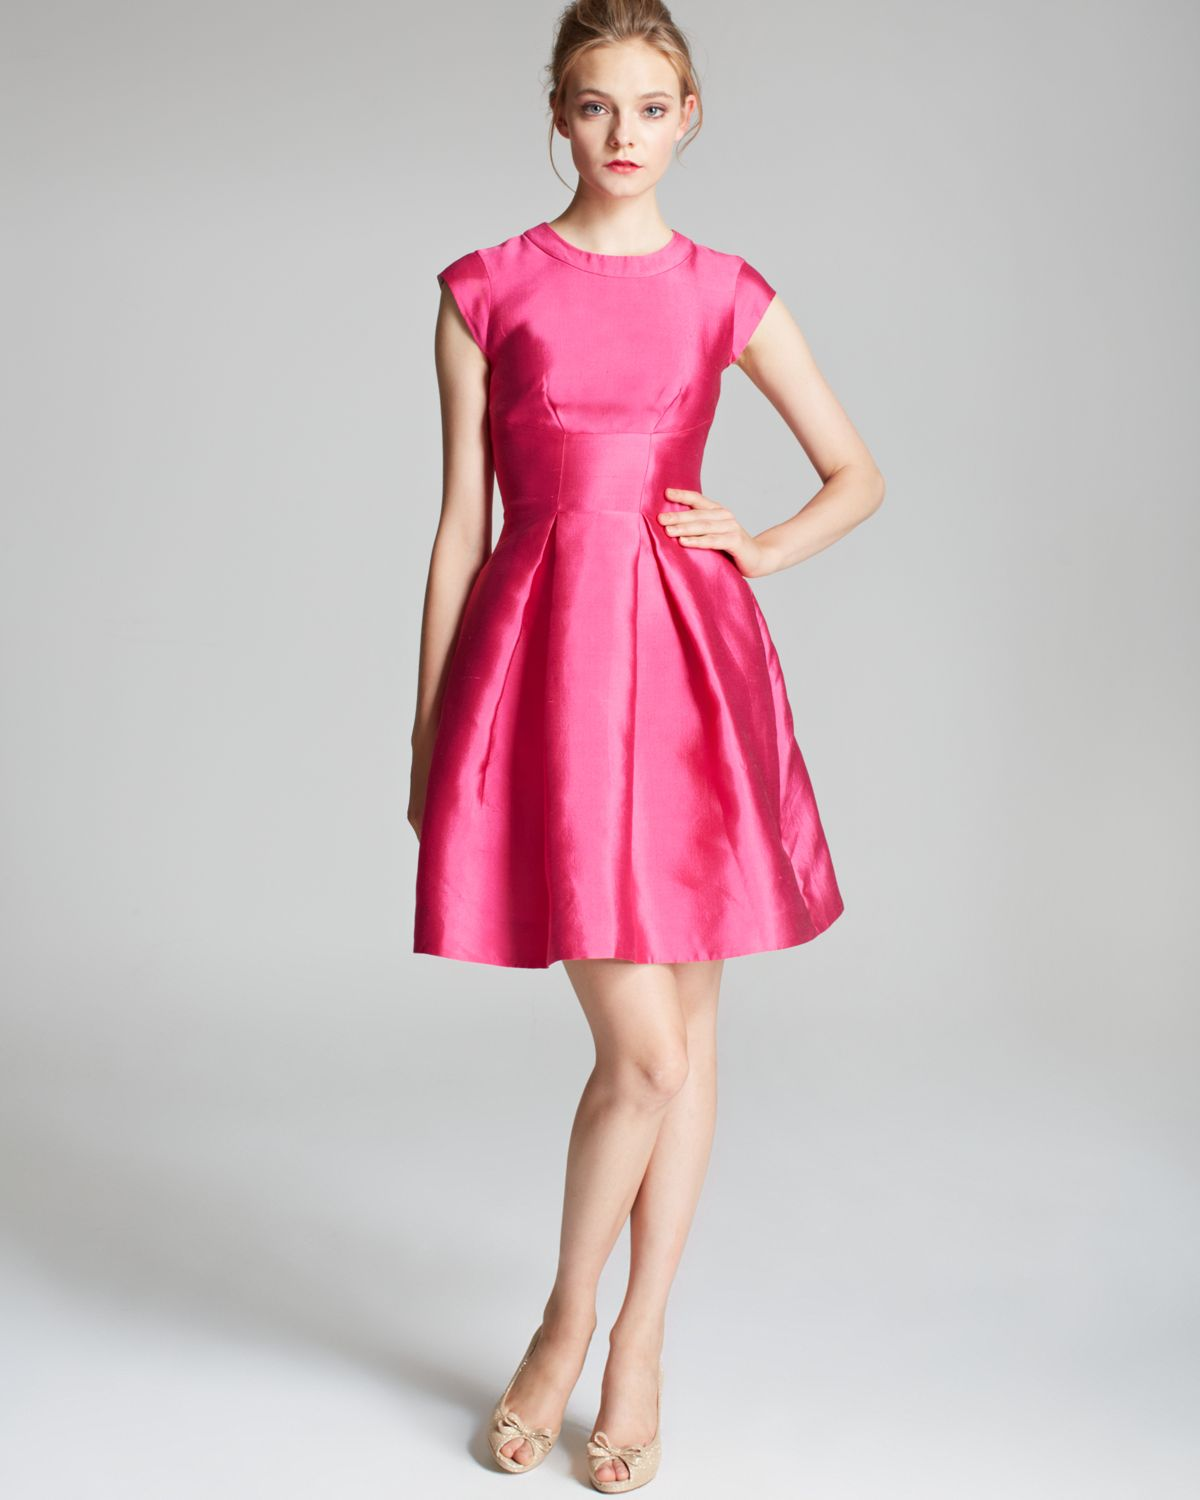 Kate Spade Dress Pink Weddings Dresses